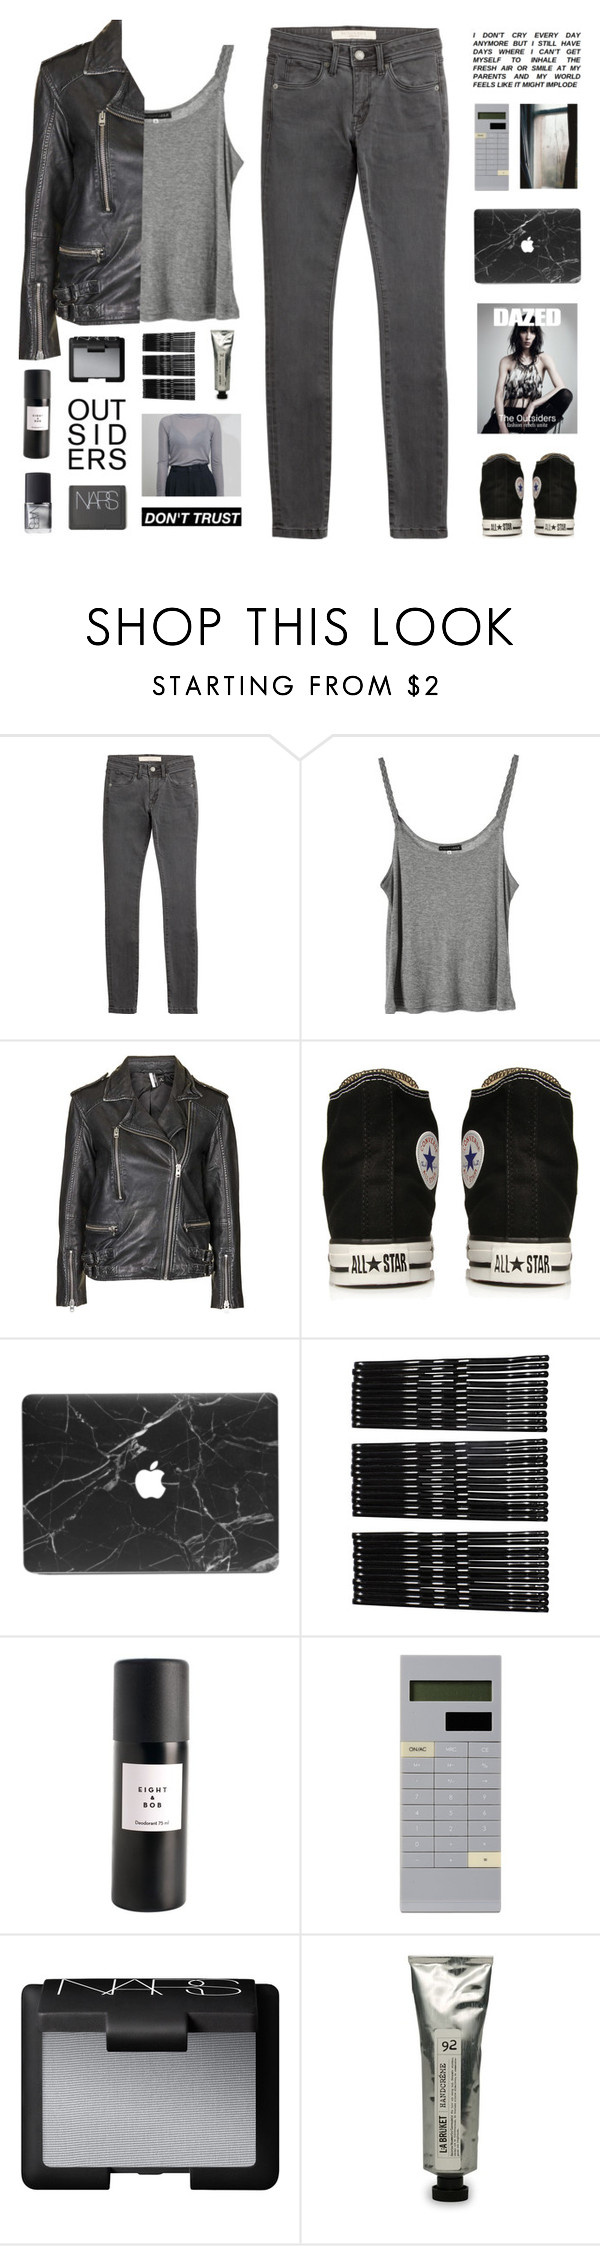 """ I feel the fever grow. "" by centurythe ❤ liked on Polyvore featuring Burberry, DK, Topshop, Converse, Monki, NARS Cosmetics, Eight & Bob, Mark's and L:A Bruket"